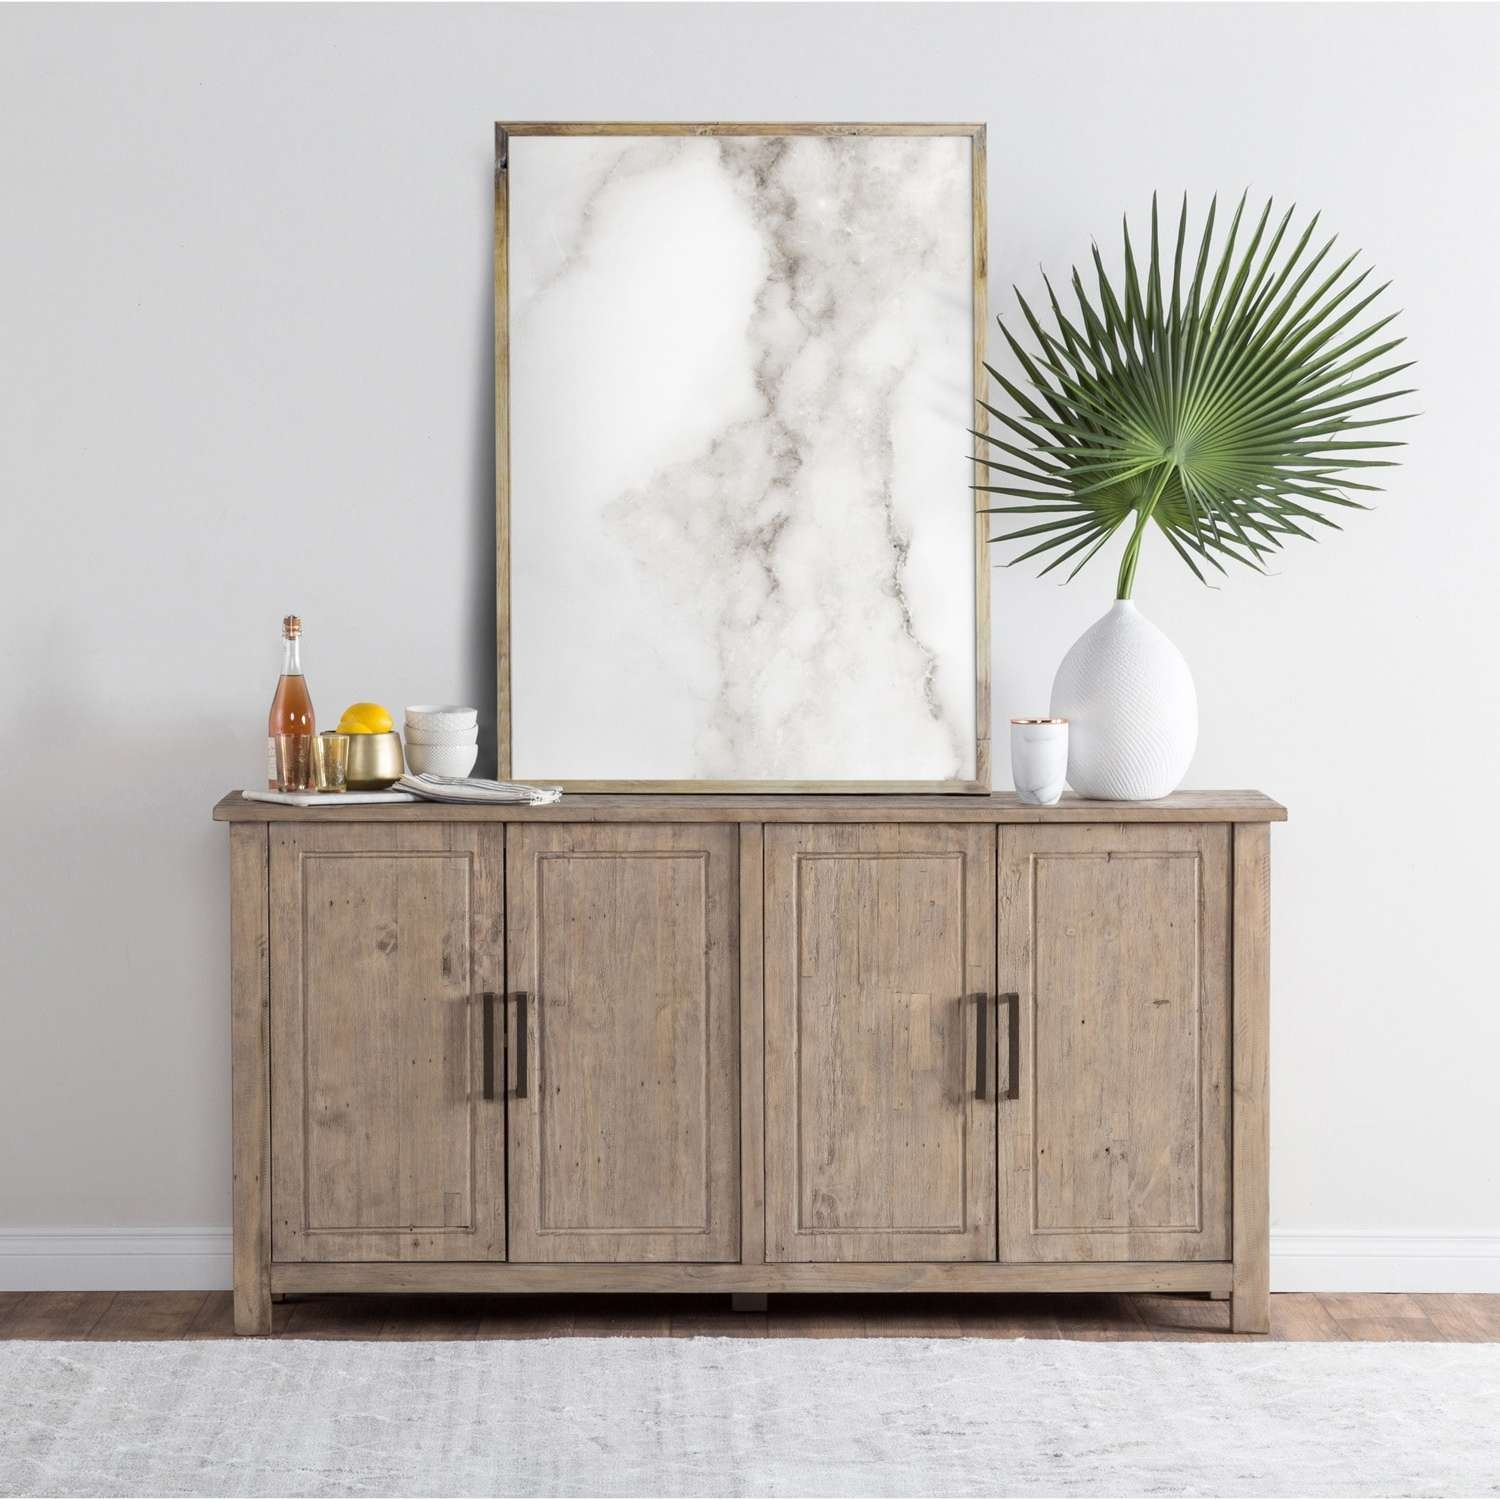 Aires Reclaimed Wood 72 Inch Sideboardkosas Home – Free Throughout 14 Inch Deep Sideboards (View 16 of 20)